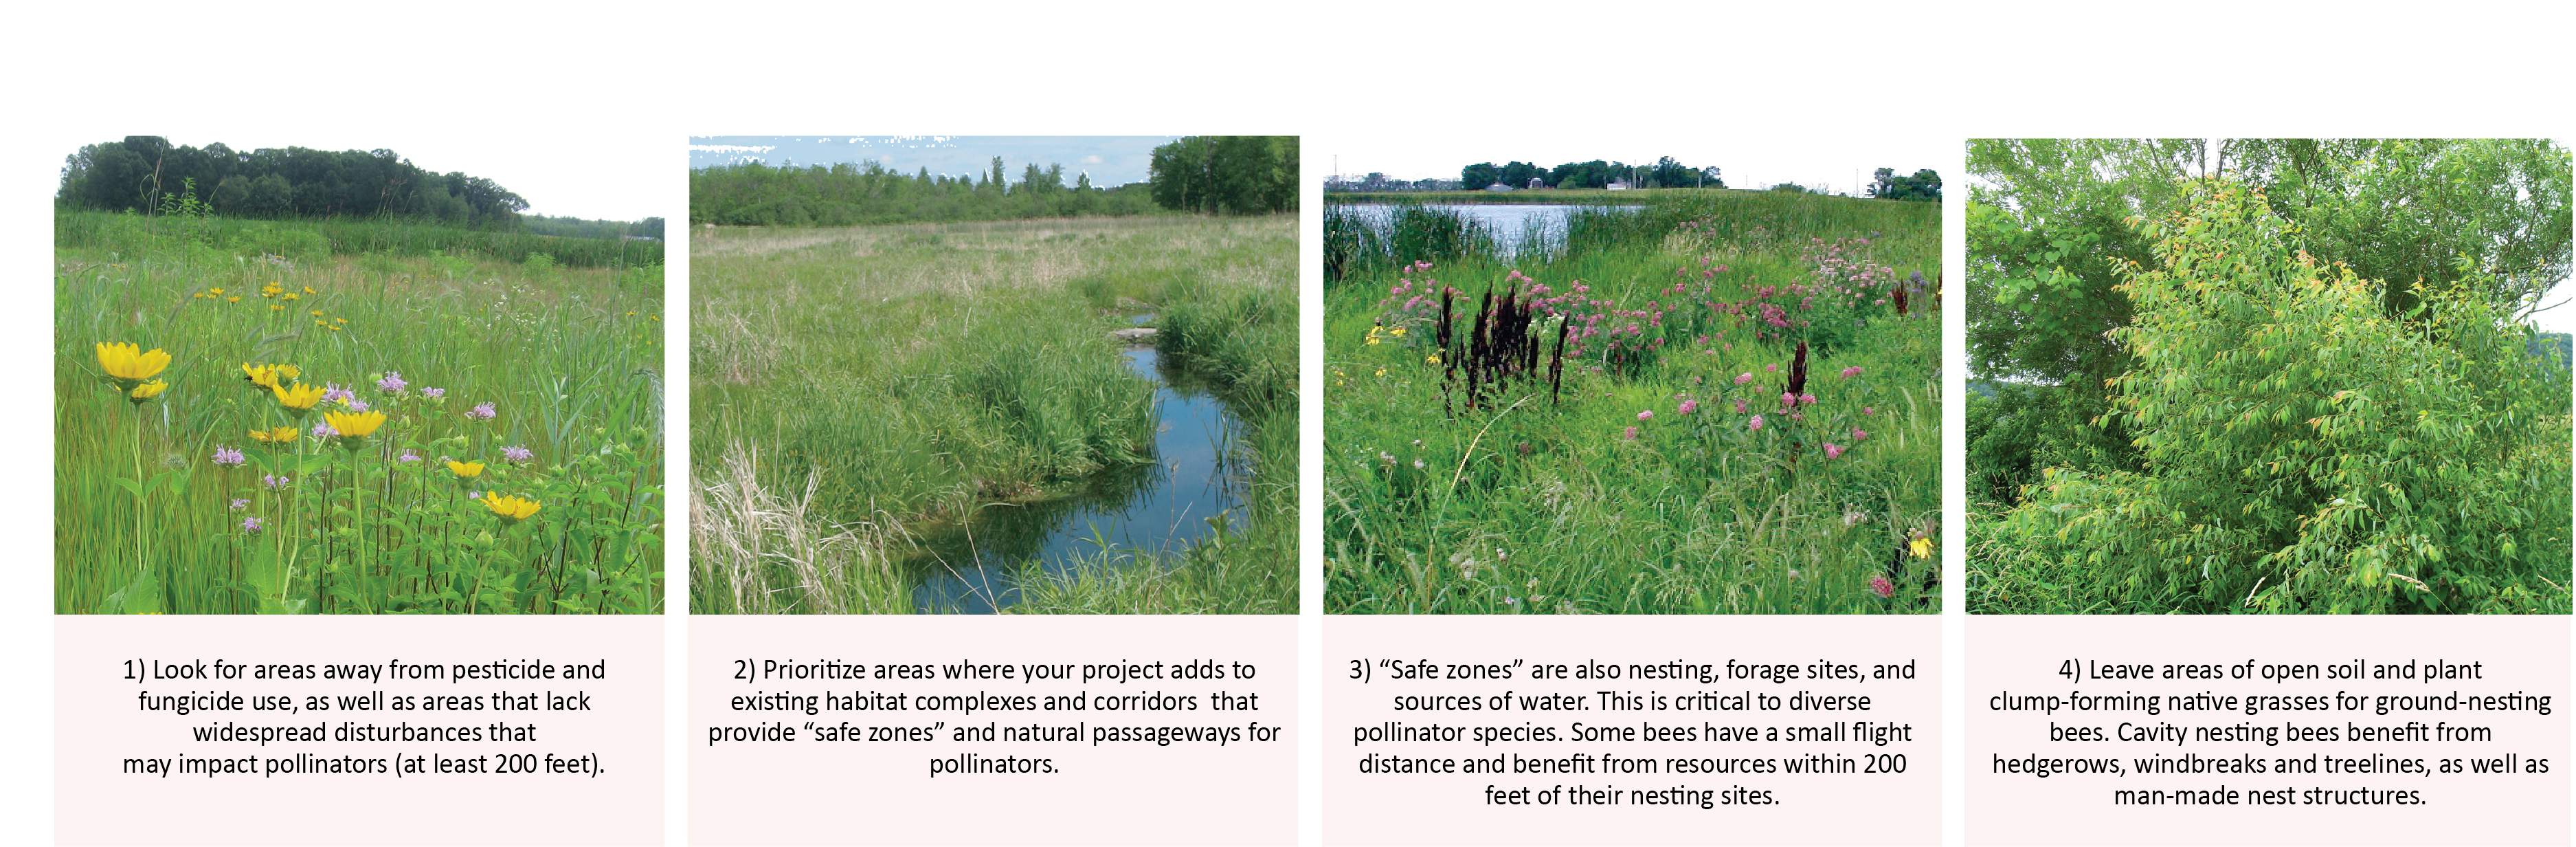 key considerations for locating pollinator habitat projects